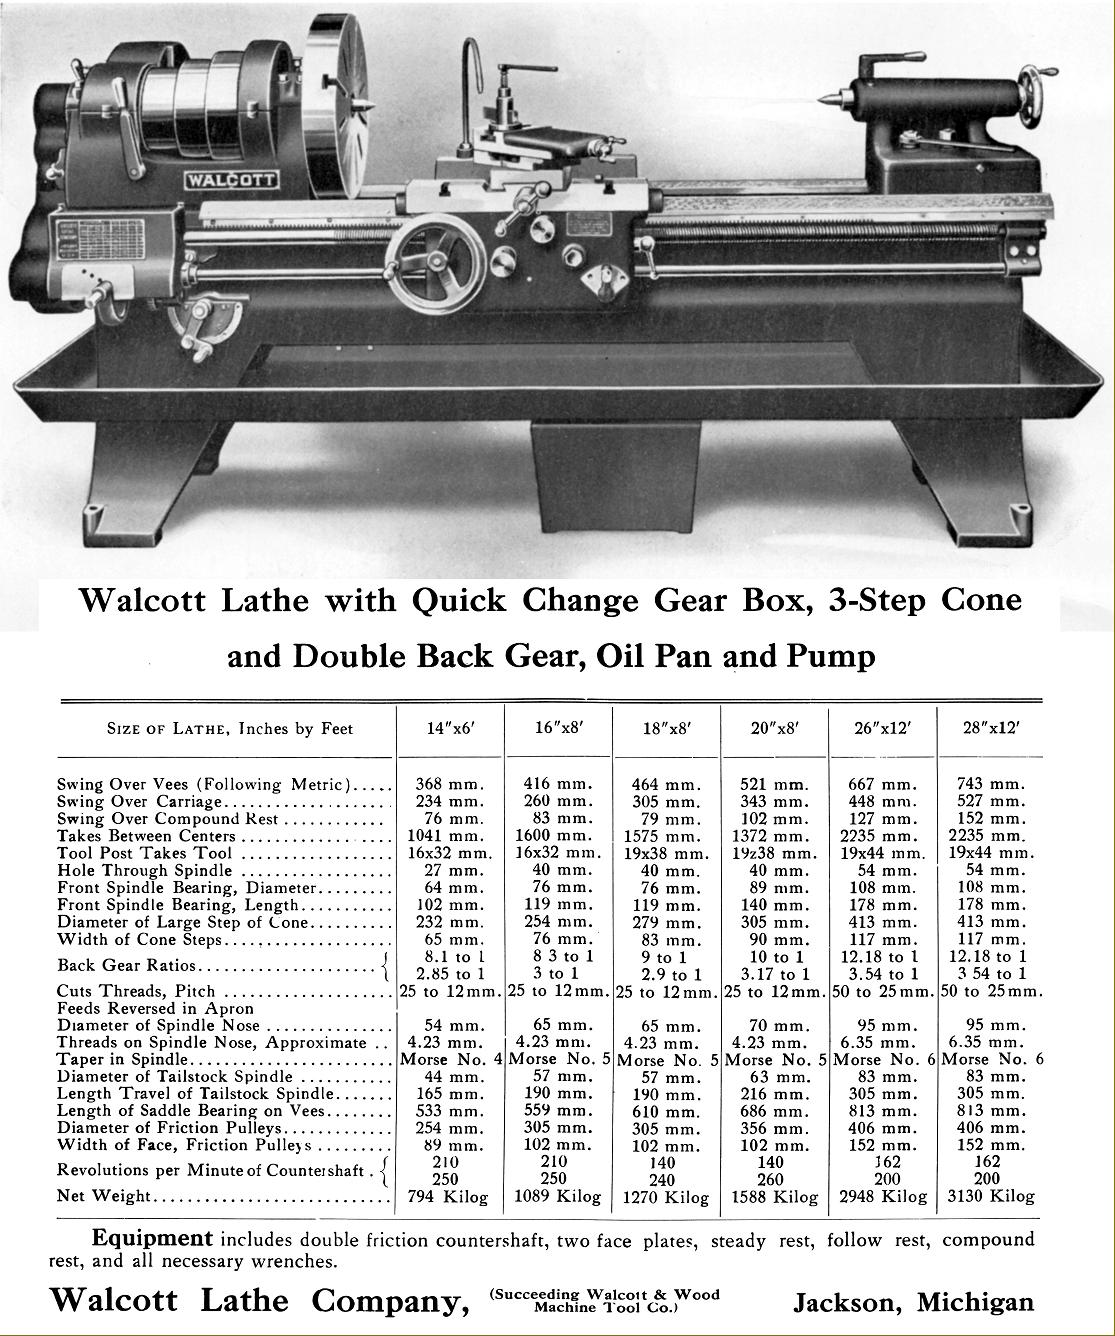 http://antiquemachinery.com/sitebuilder/images/Walcott-Lathe-14x6-foot-about-1908-from-with-thanks-to-lathes-co-uk.jpg